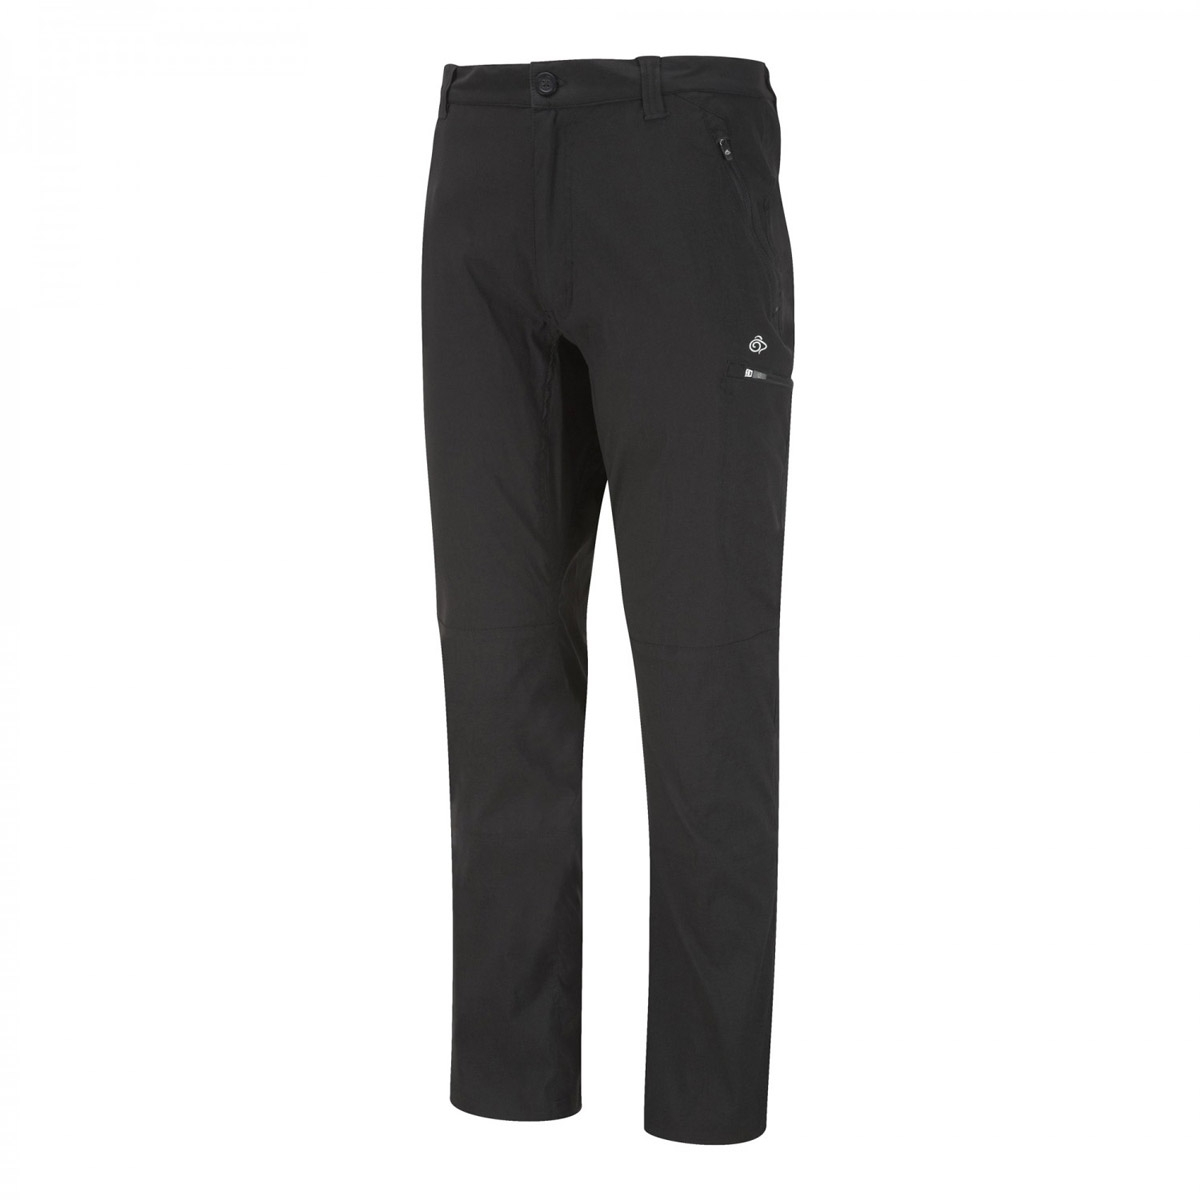 Image of Craghoppers Kiwi Pro Active Trousers - Black